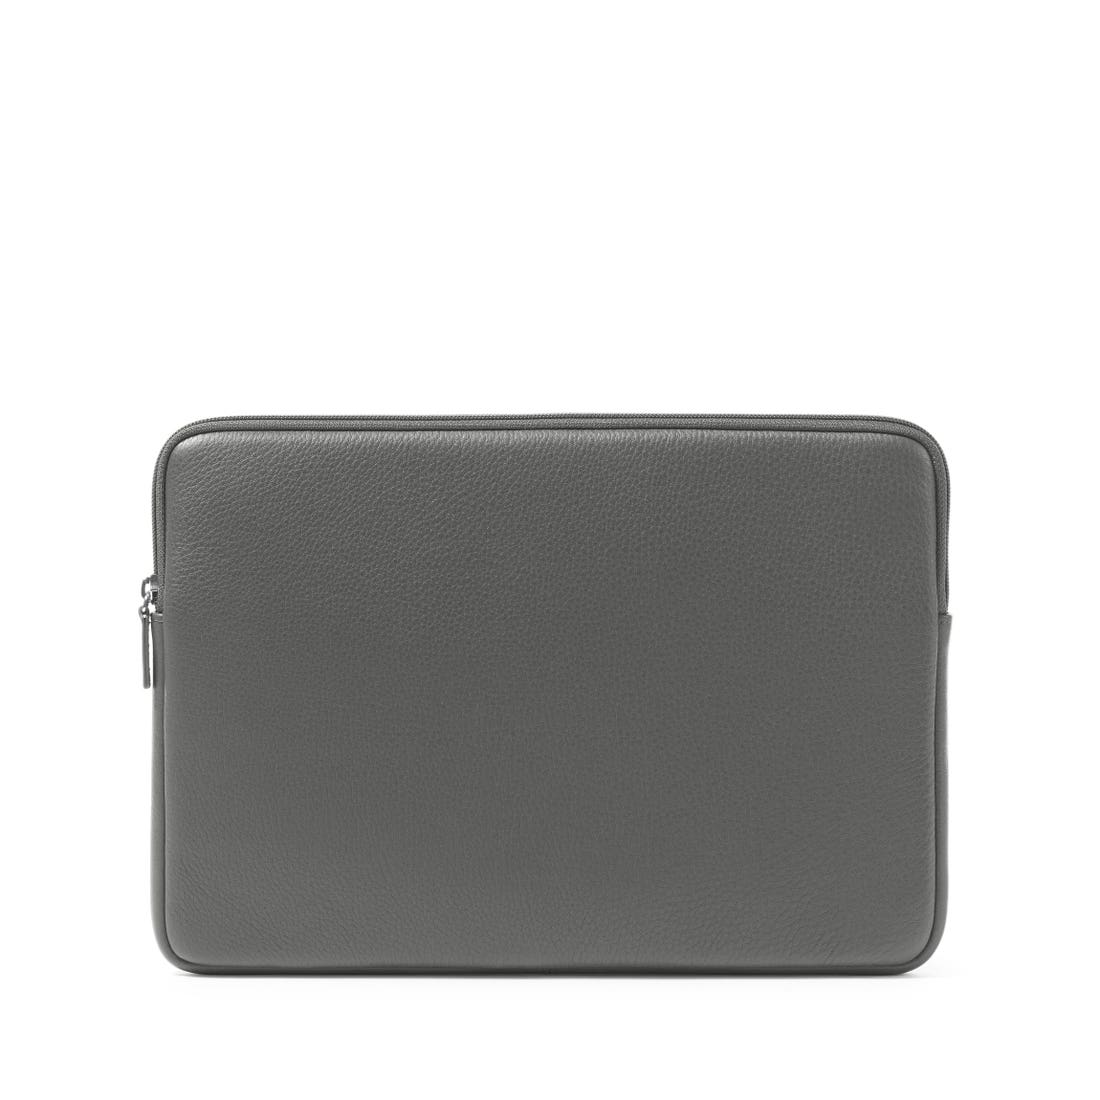 13 Inch MacBook Pro Sleeve